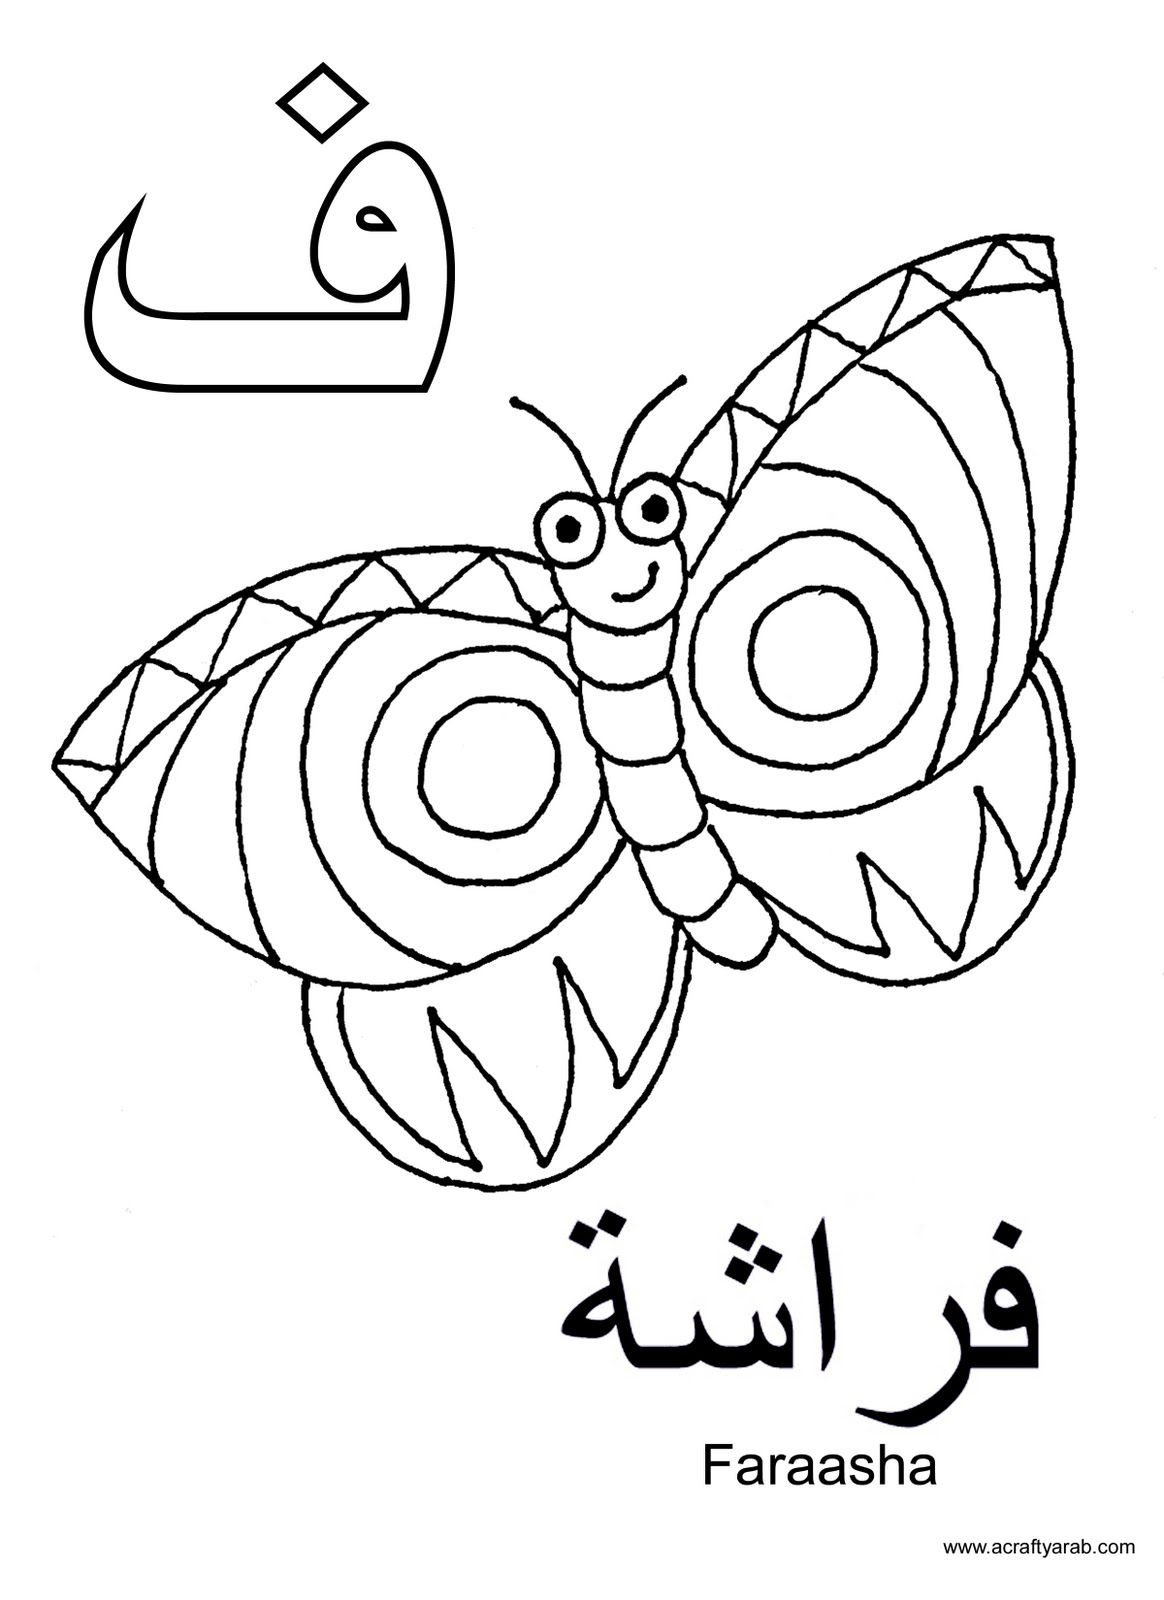 L sound coloring pages - A Crafty Arab Arabic Alphabet Colouring Pages